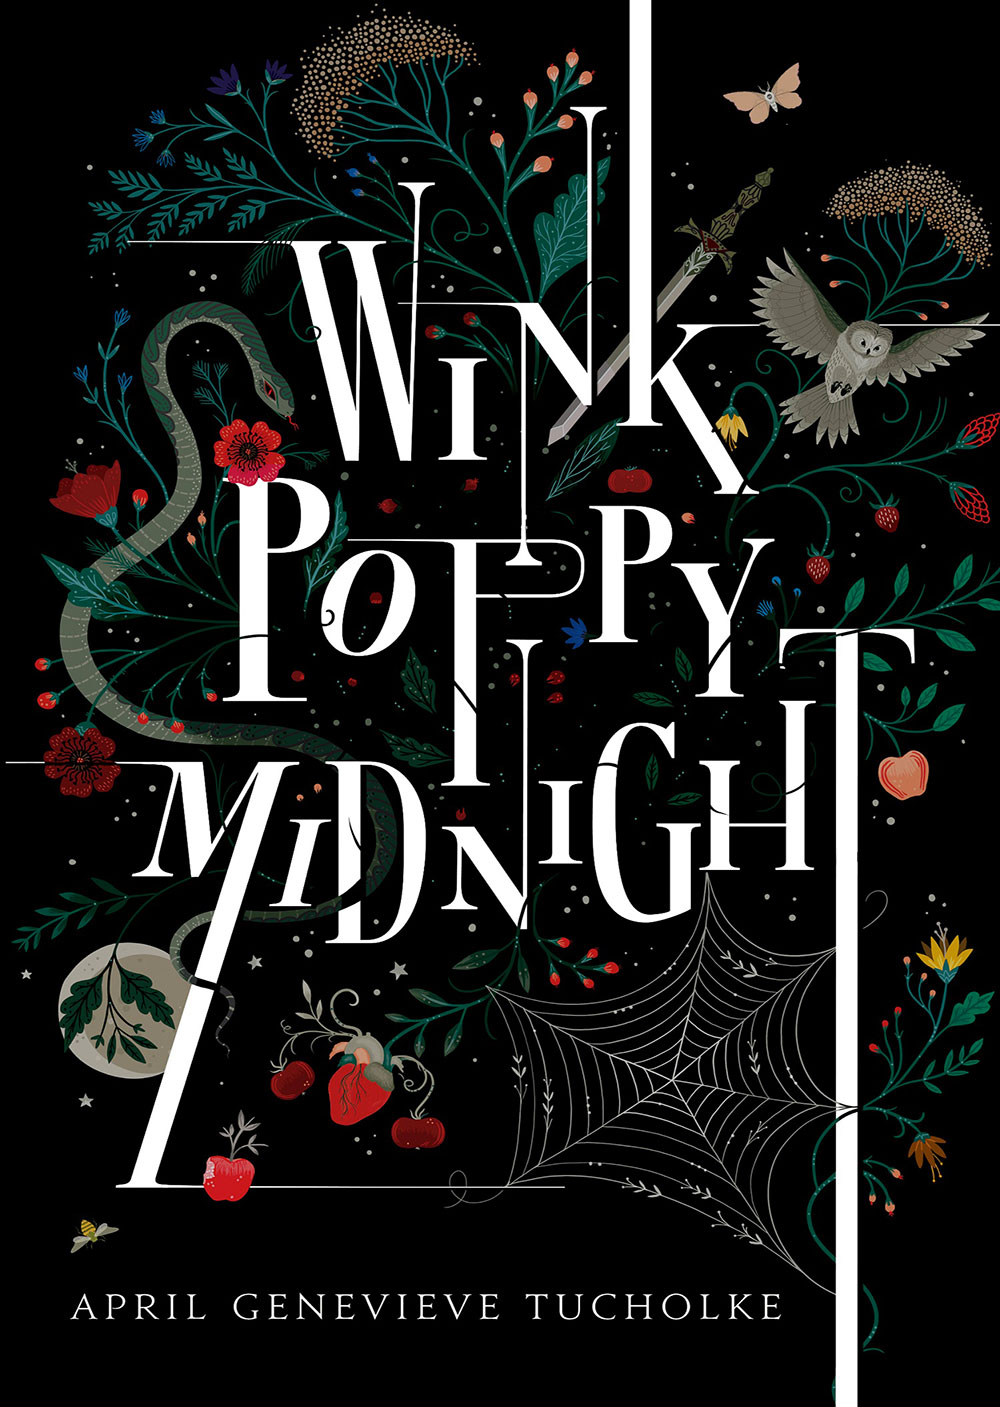 Winky poppy midnight